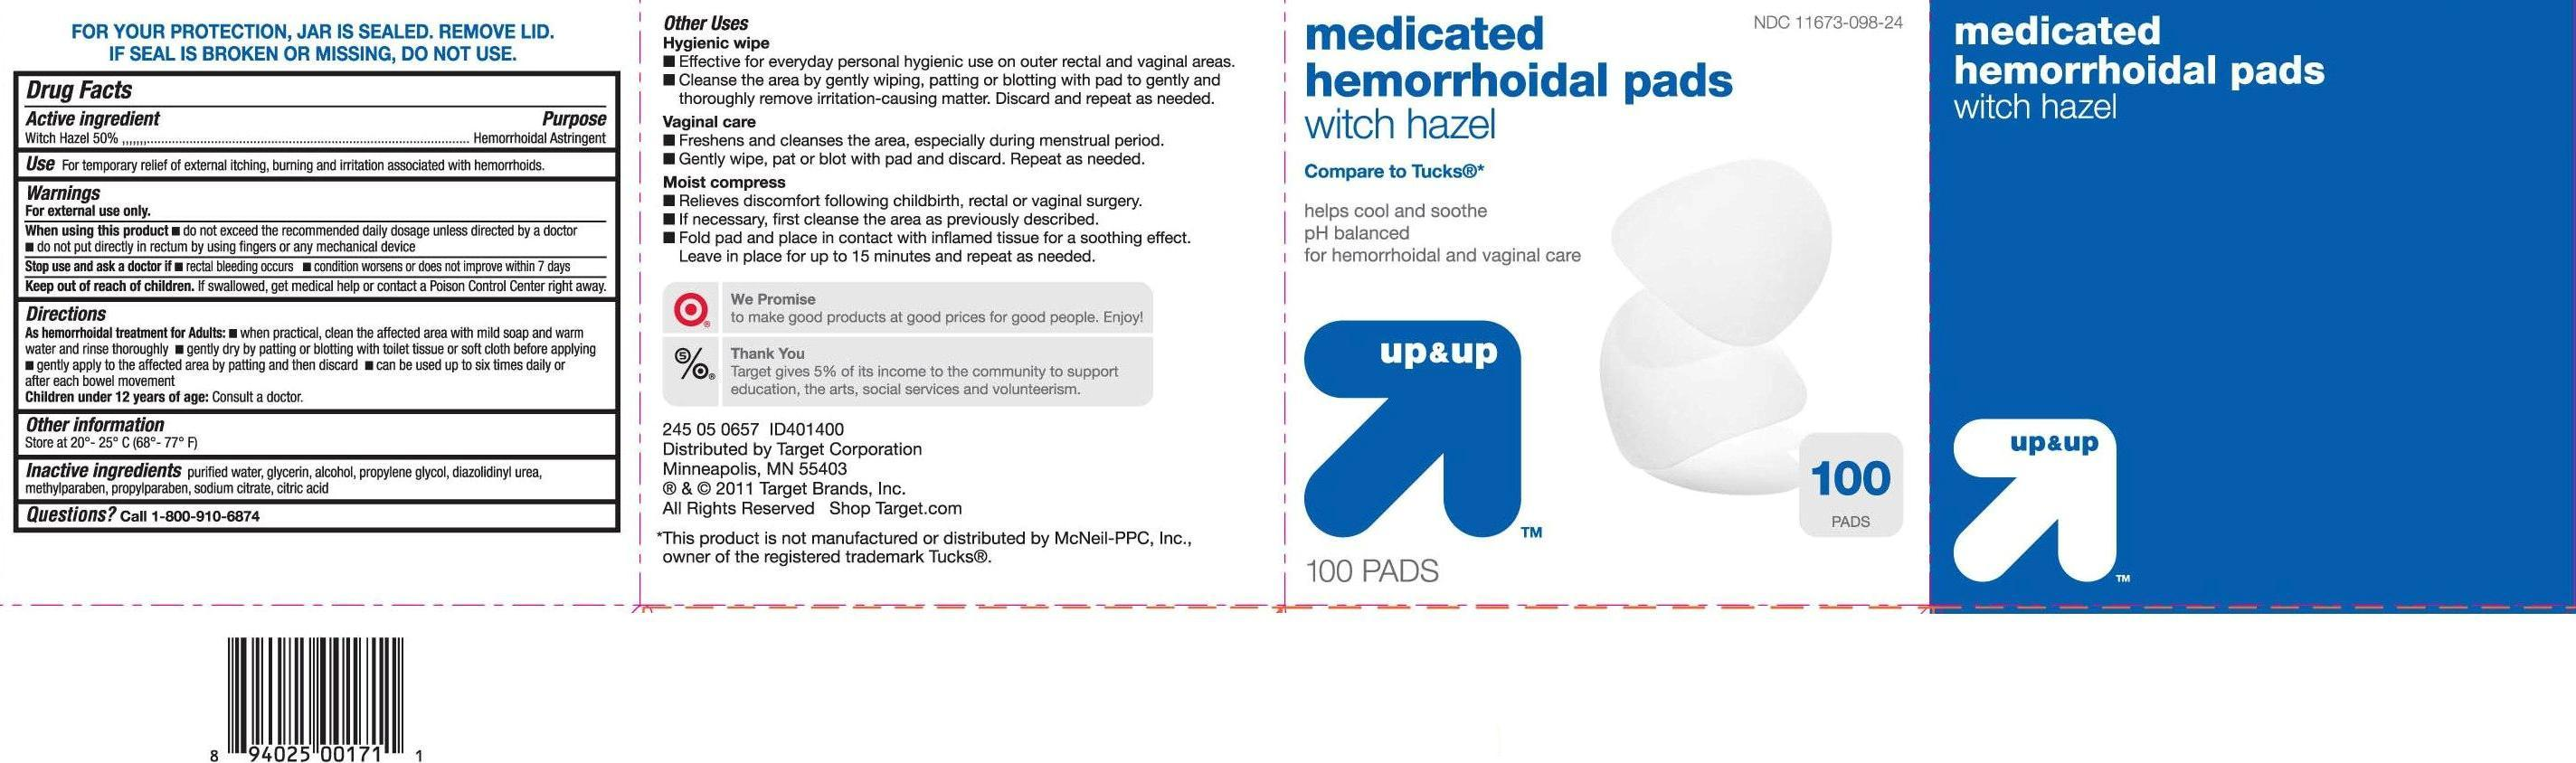 Up And Up Medicated Hemorrhoidal Pads Information, Side Effects